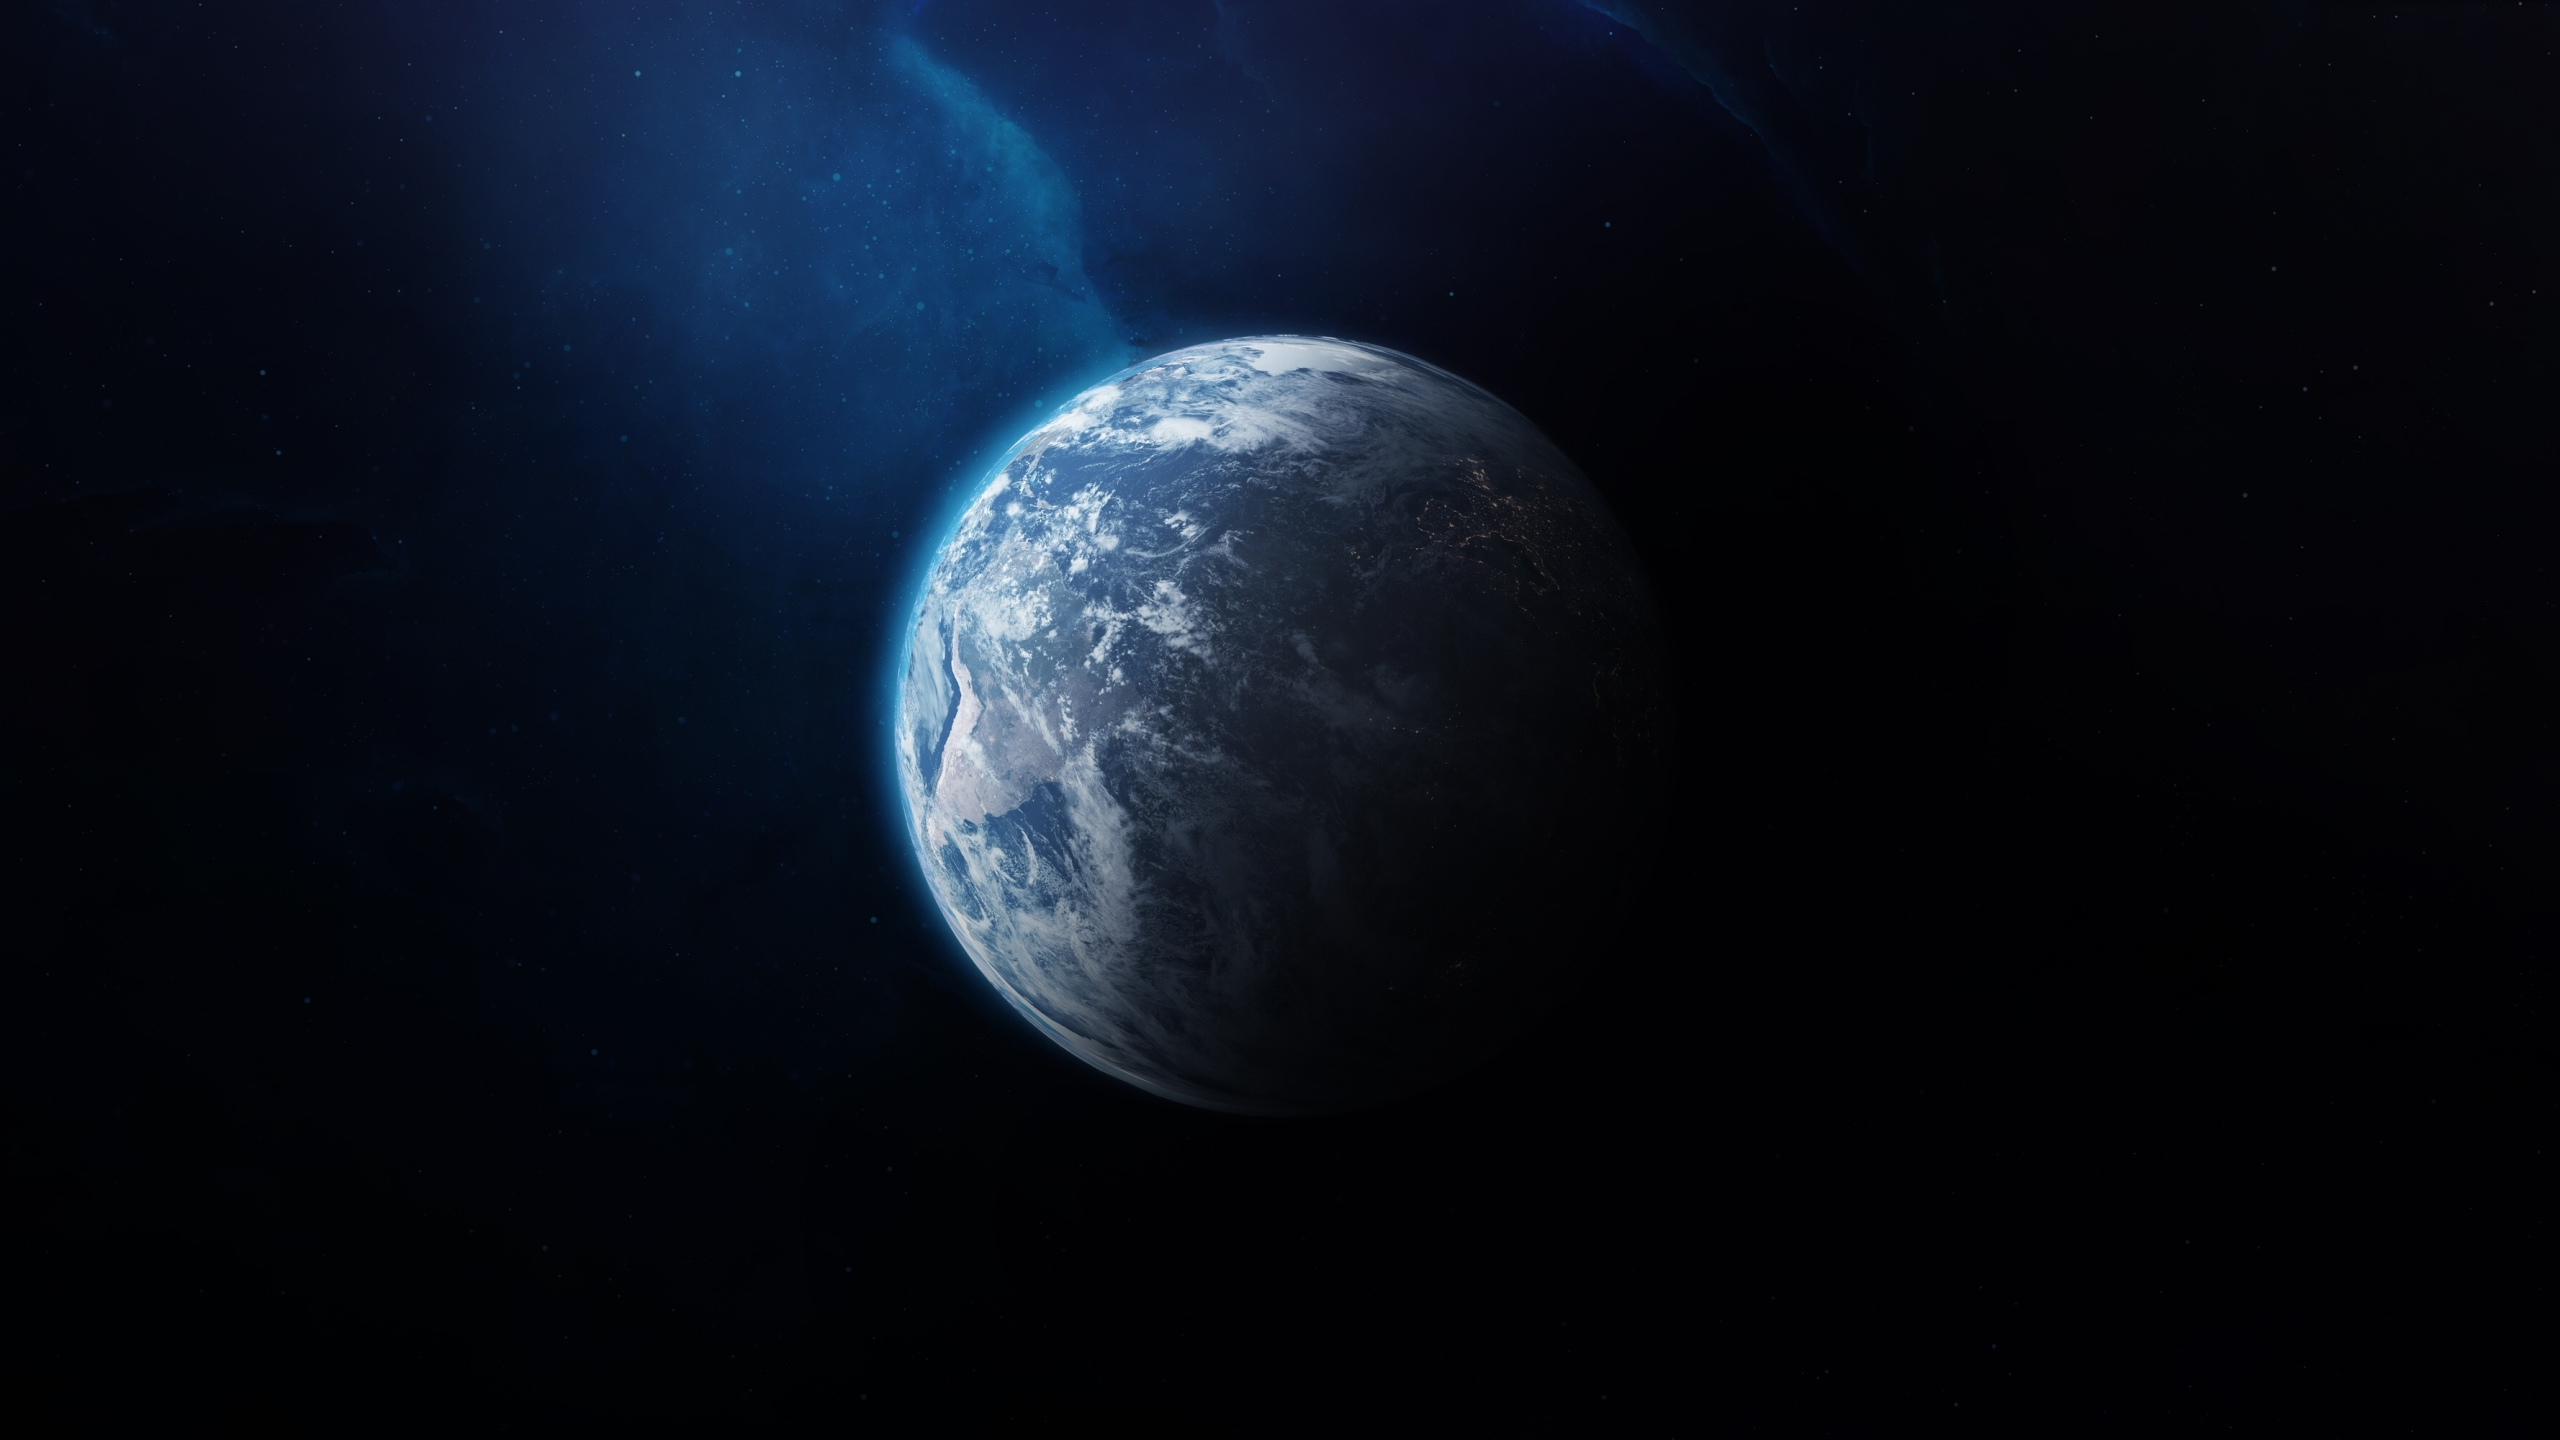 2560x1440 Earth From Outer Space 1440p Resolution Wallpaper Hd Space 4k Wallpapers Images Photos And Background